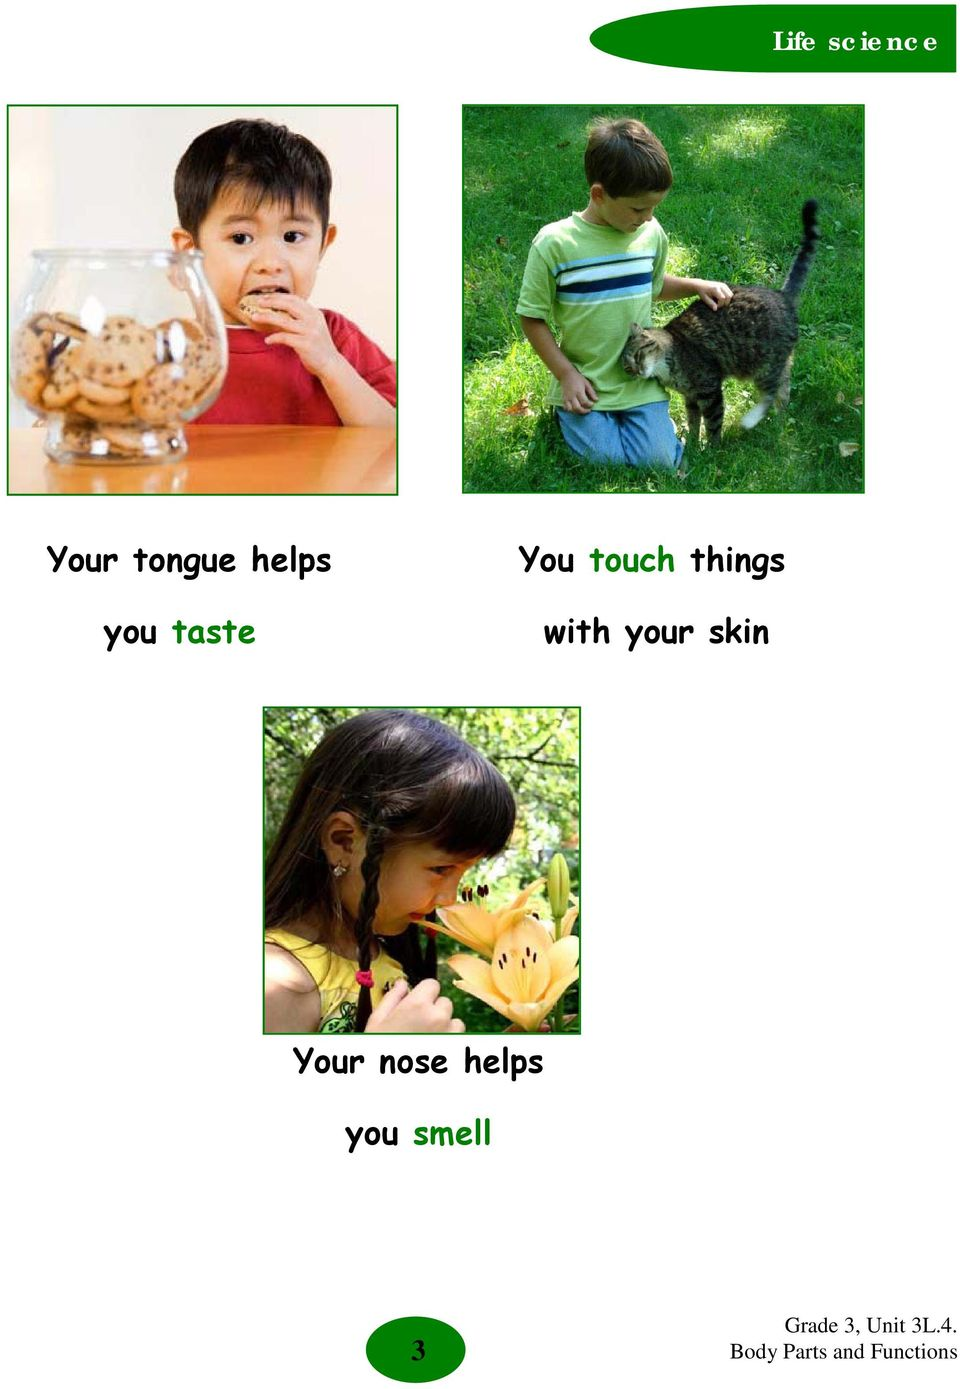 things with your skin